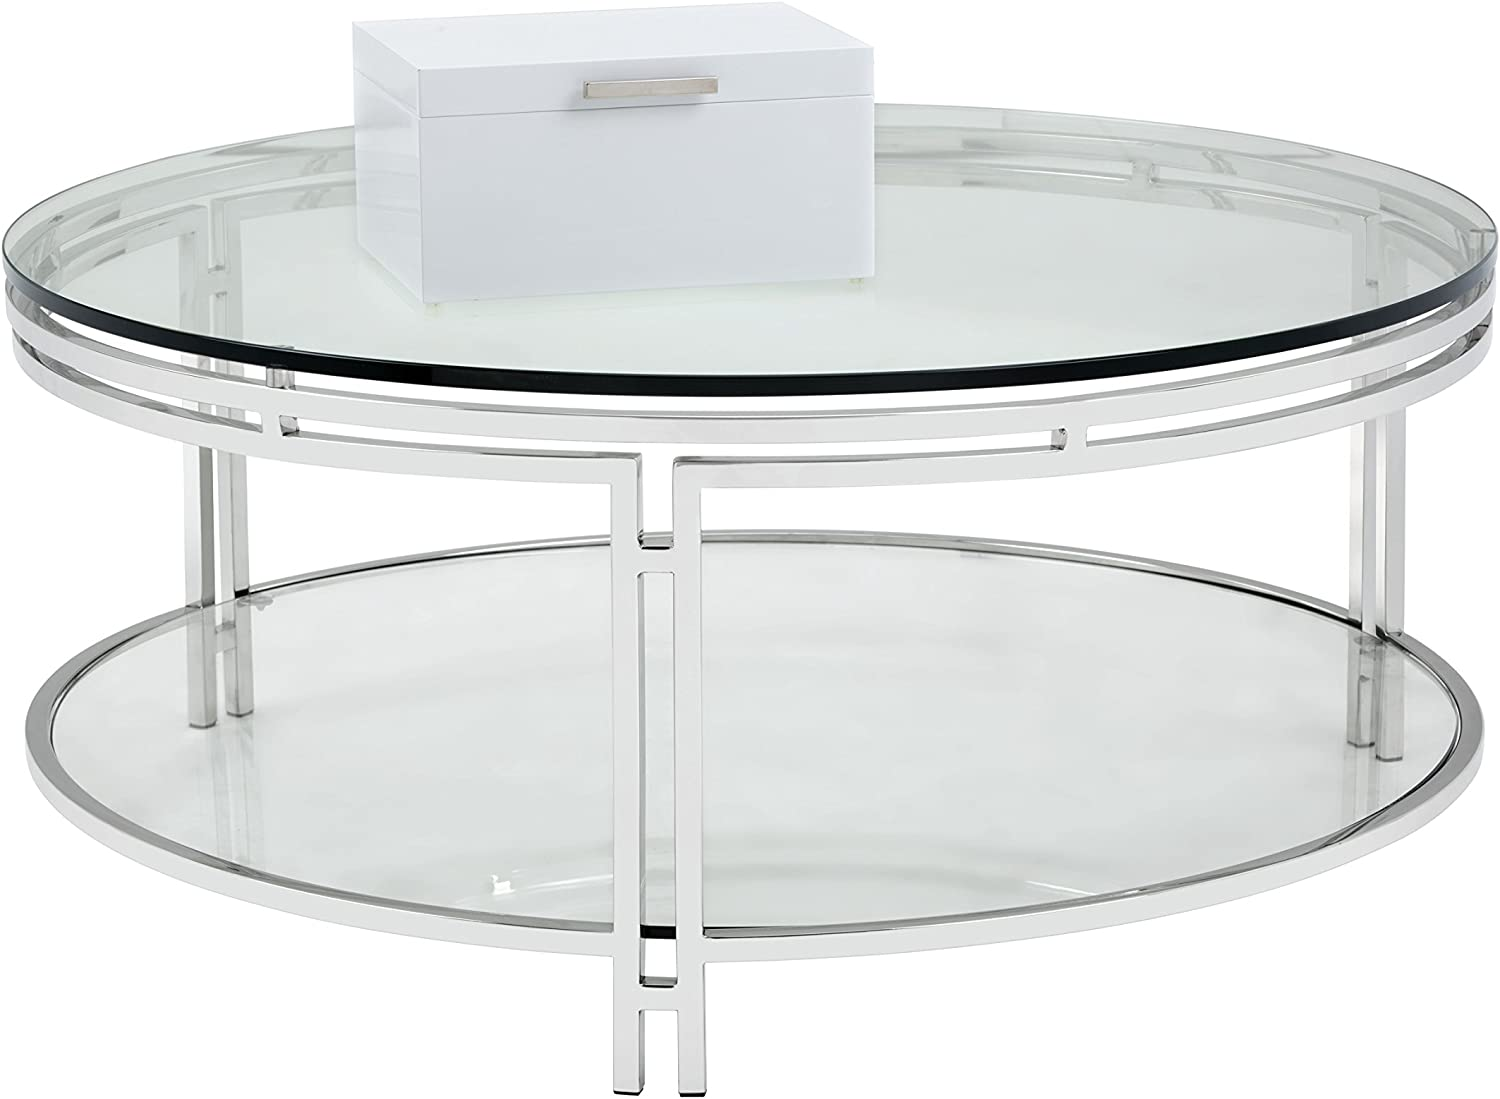 Sunpan Ikon Coffee Tables Max 53% Max 63% OFF OFF Stainless Steel